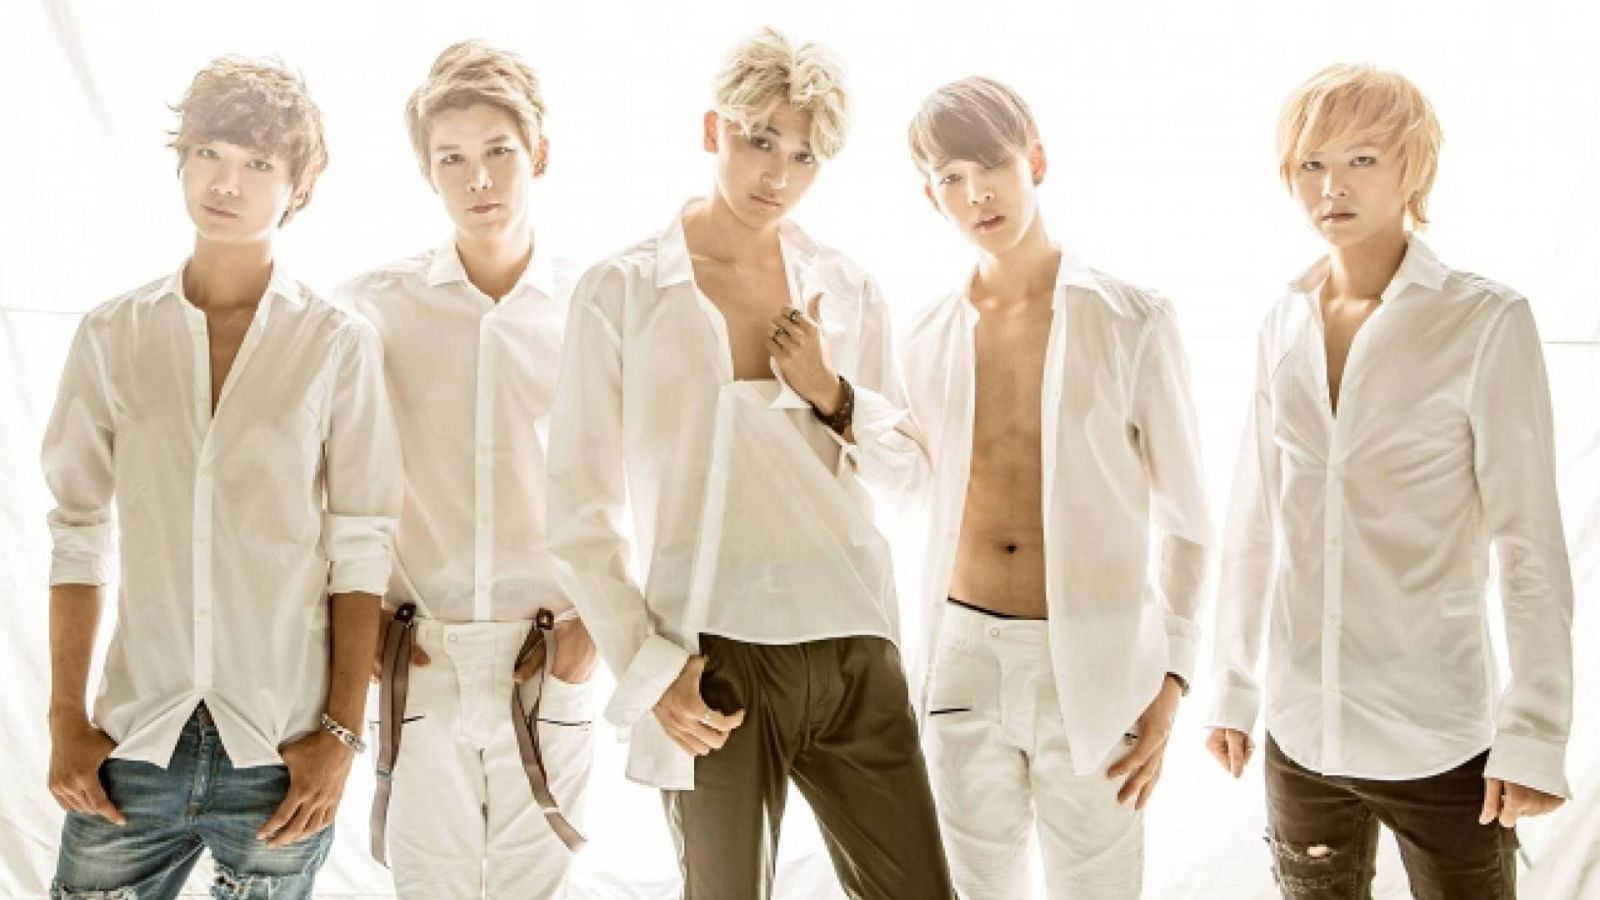 LEDApple Euroopassa © LEDApple. All Rights Reserved.